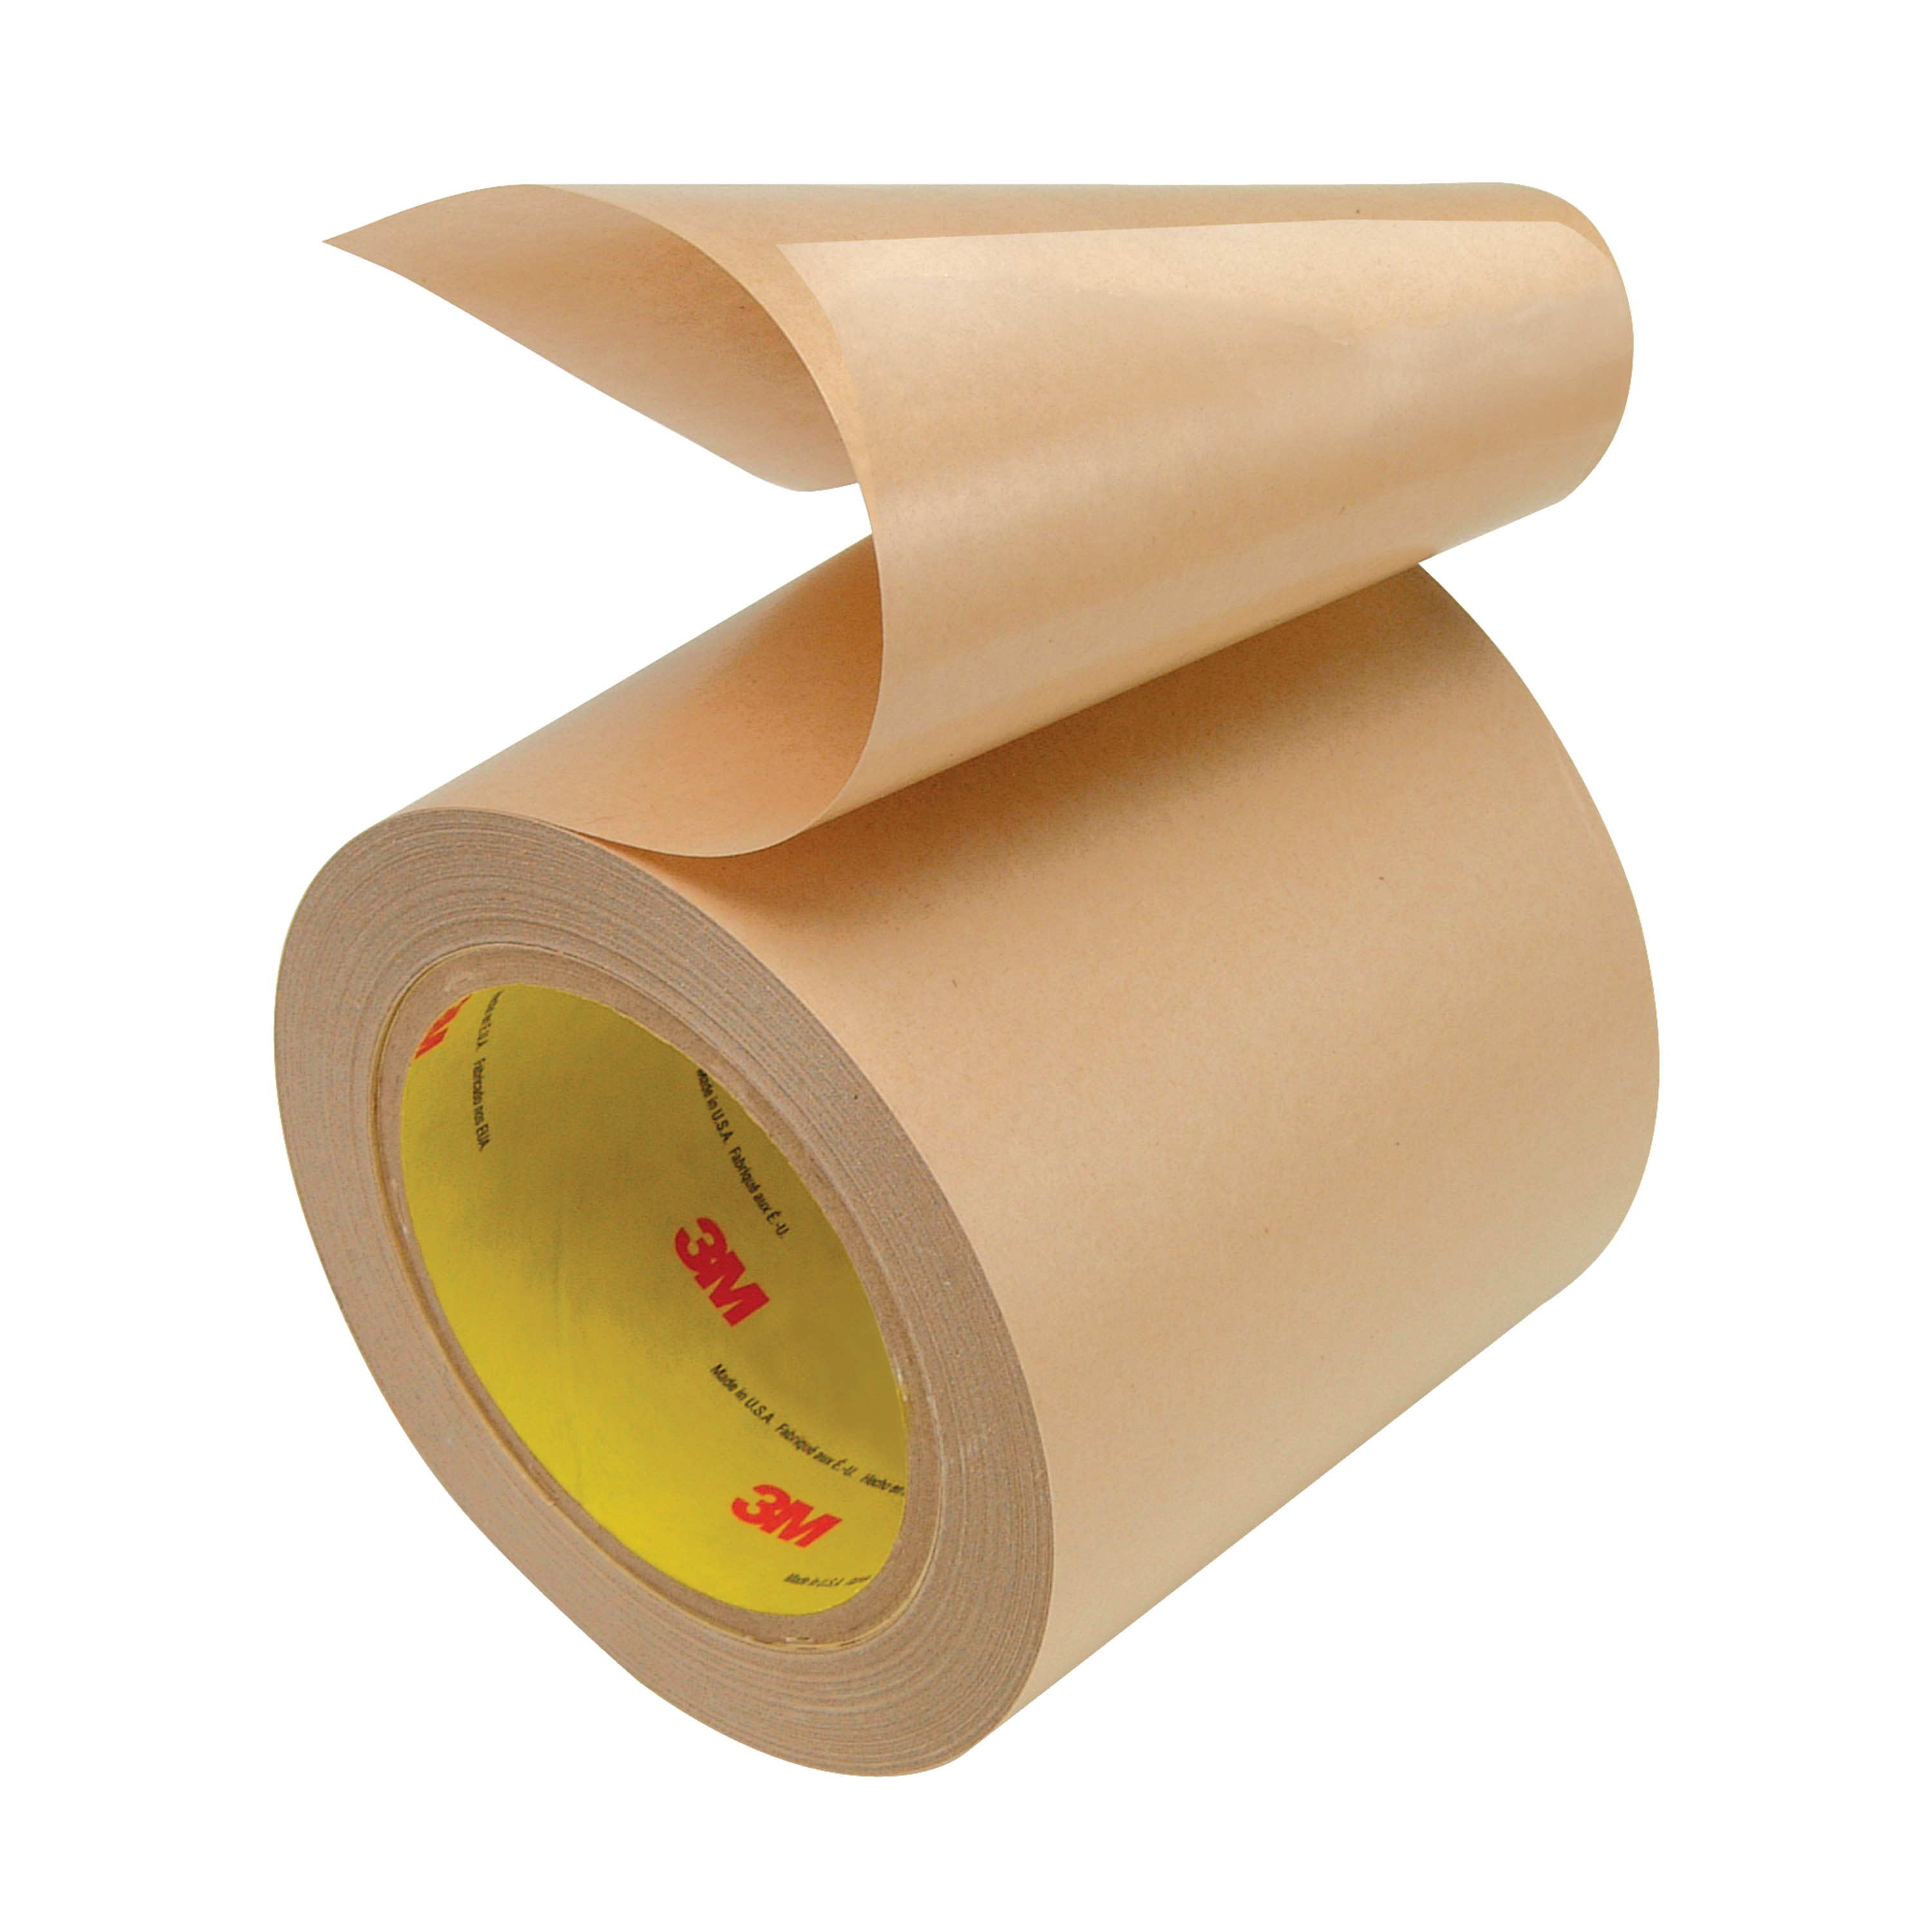 3M™ Electrically Conductive Adhesive Transfer Tape 9703, Configurable